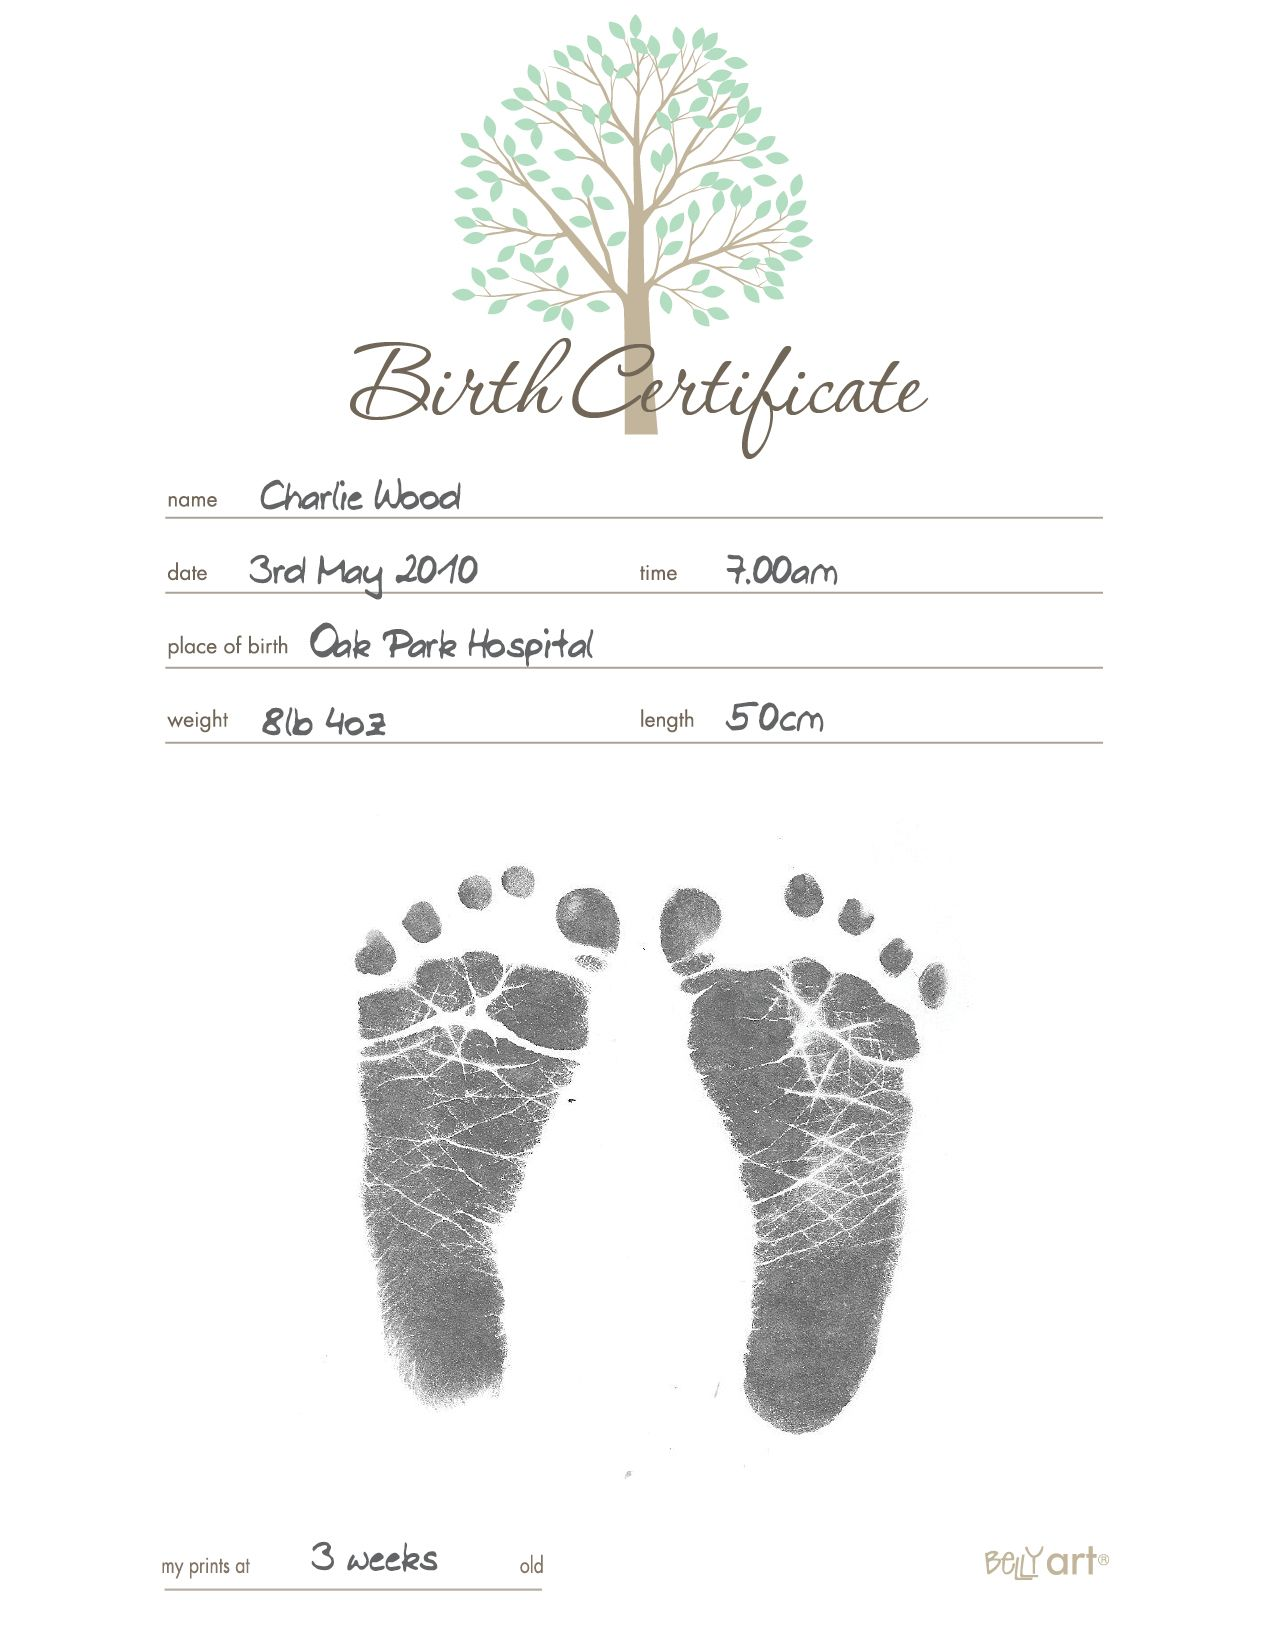 Belly art inkless birth certificate apostille birth certificate belly art inkless birth certificate aiddatafo Images